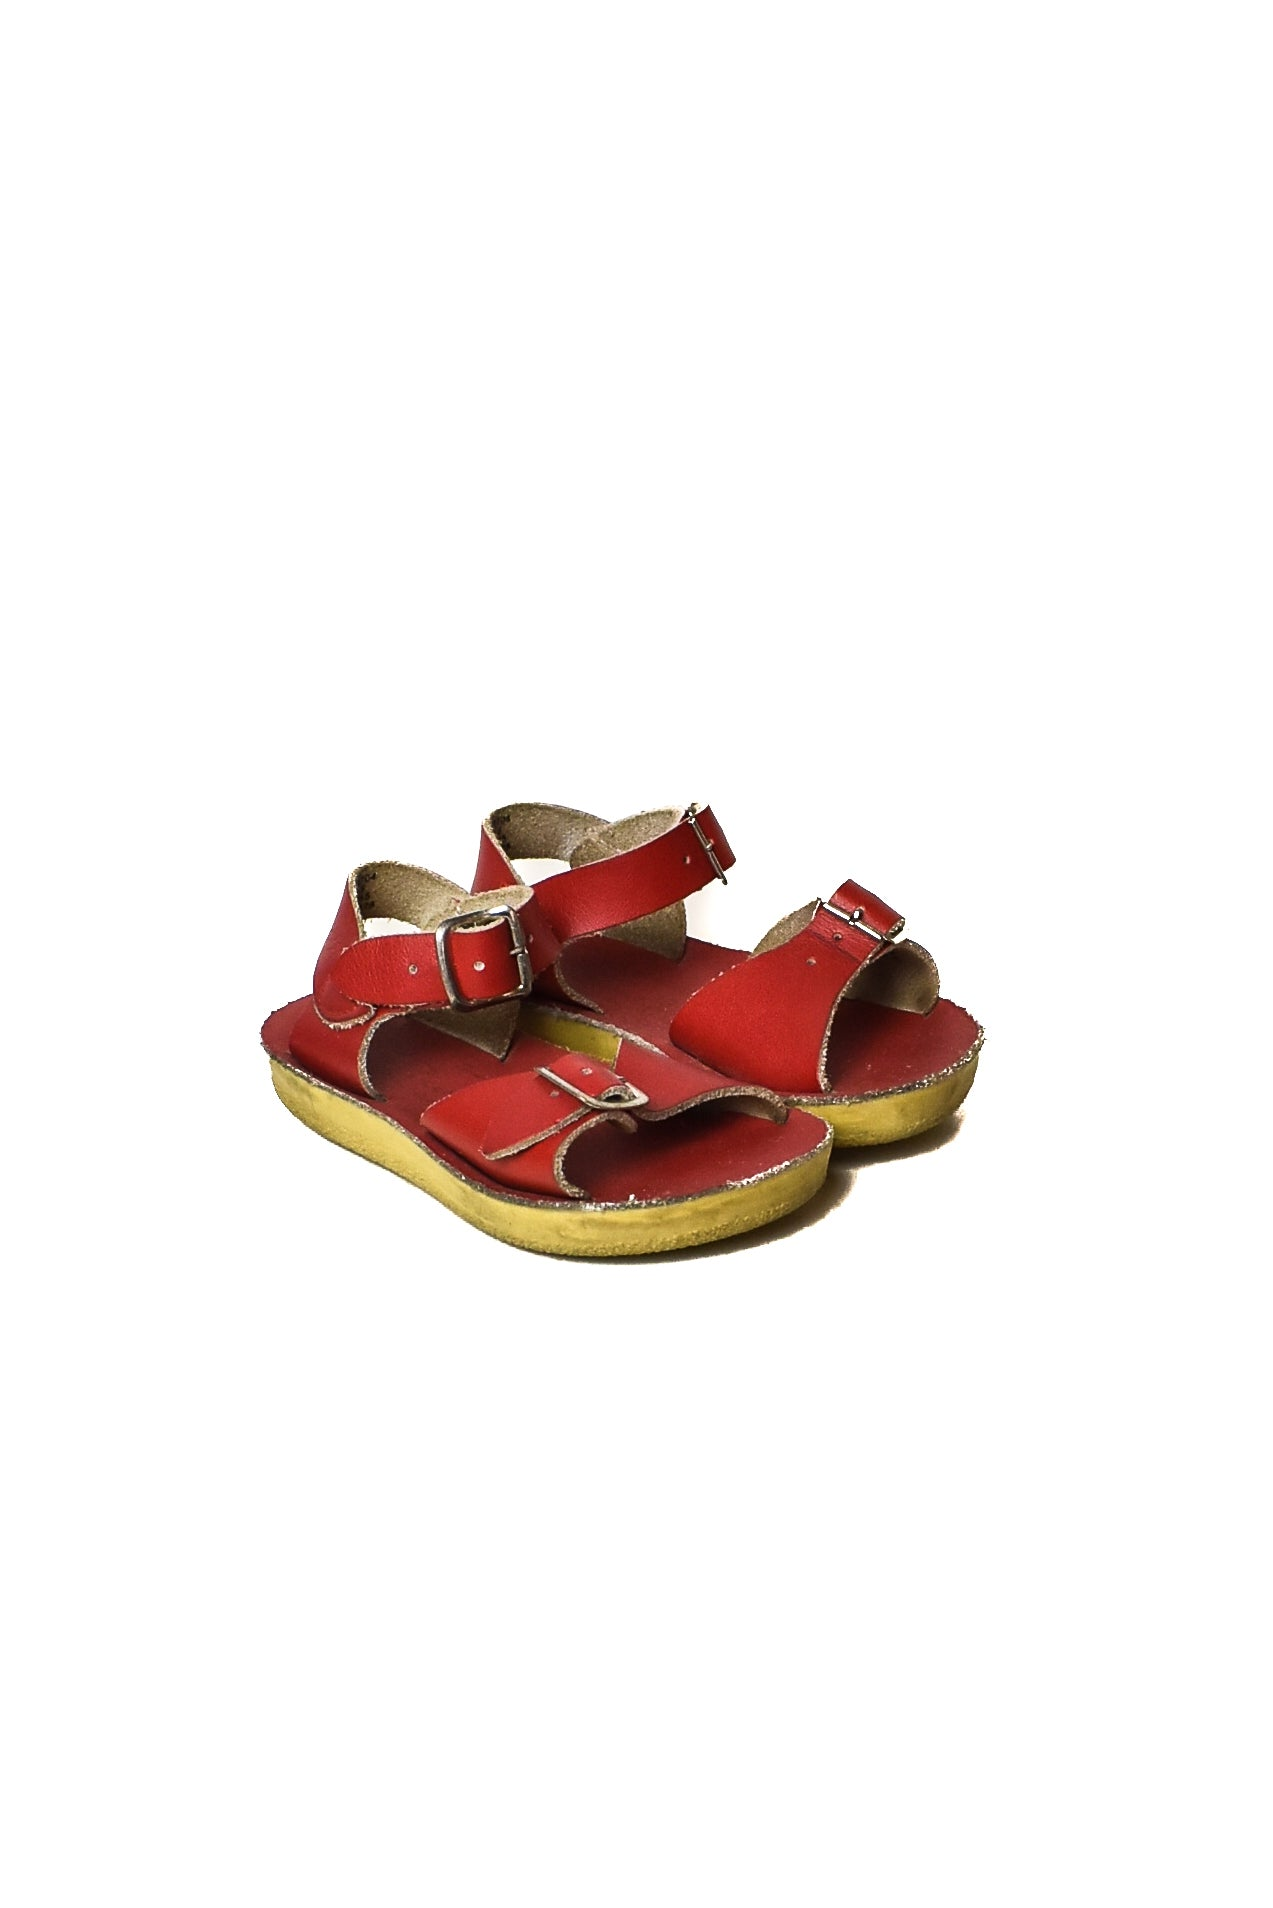 10008468 Sun-San Baby ~ Sandals 18-24M (US 7) at Retykle